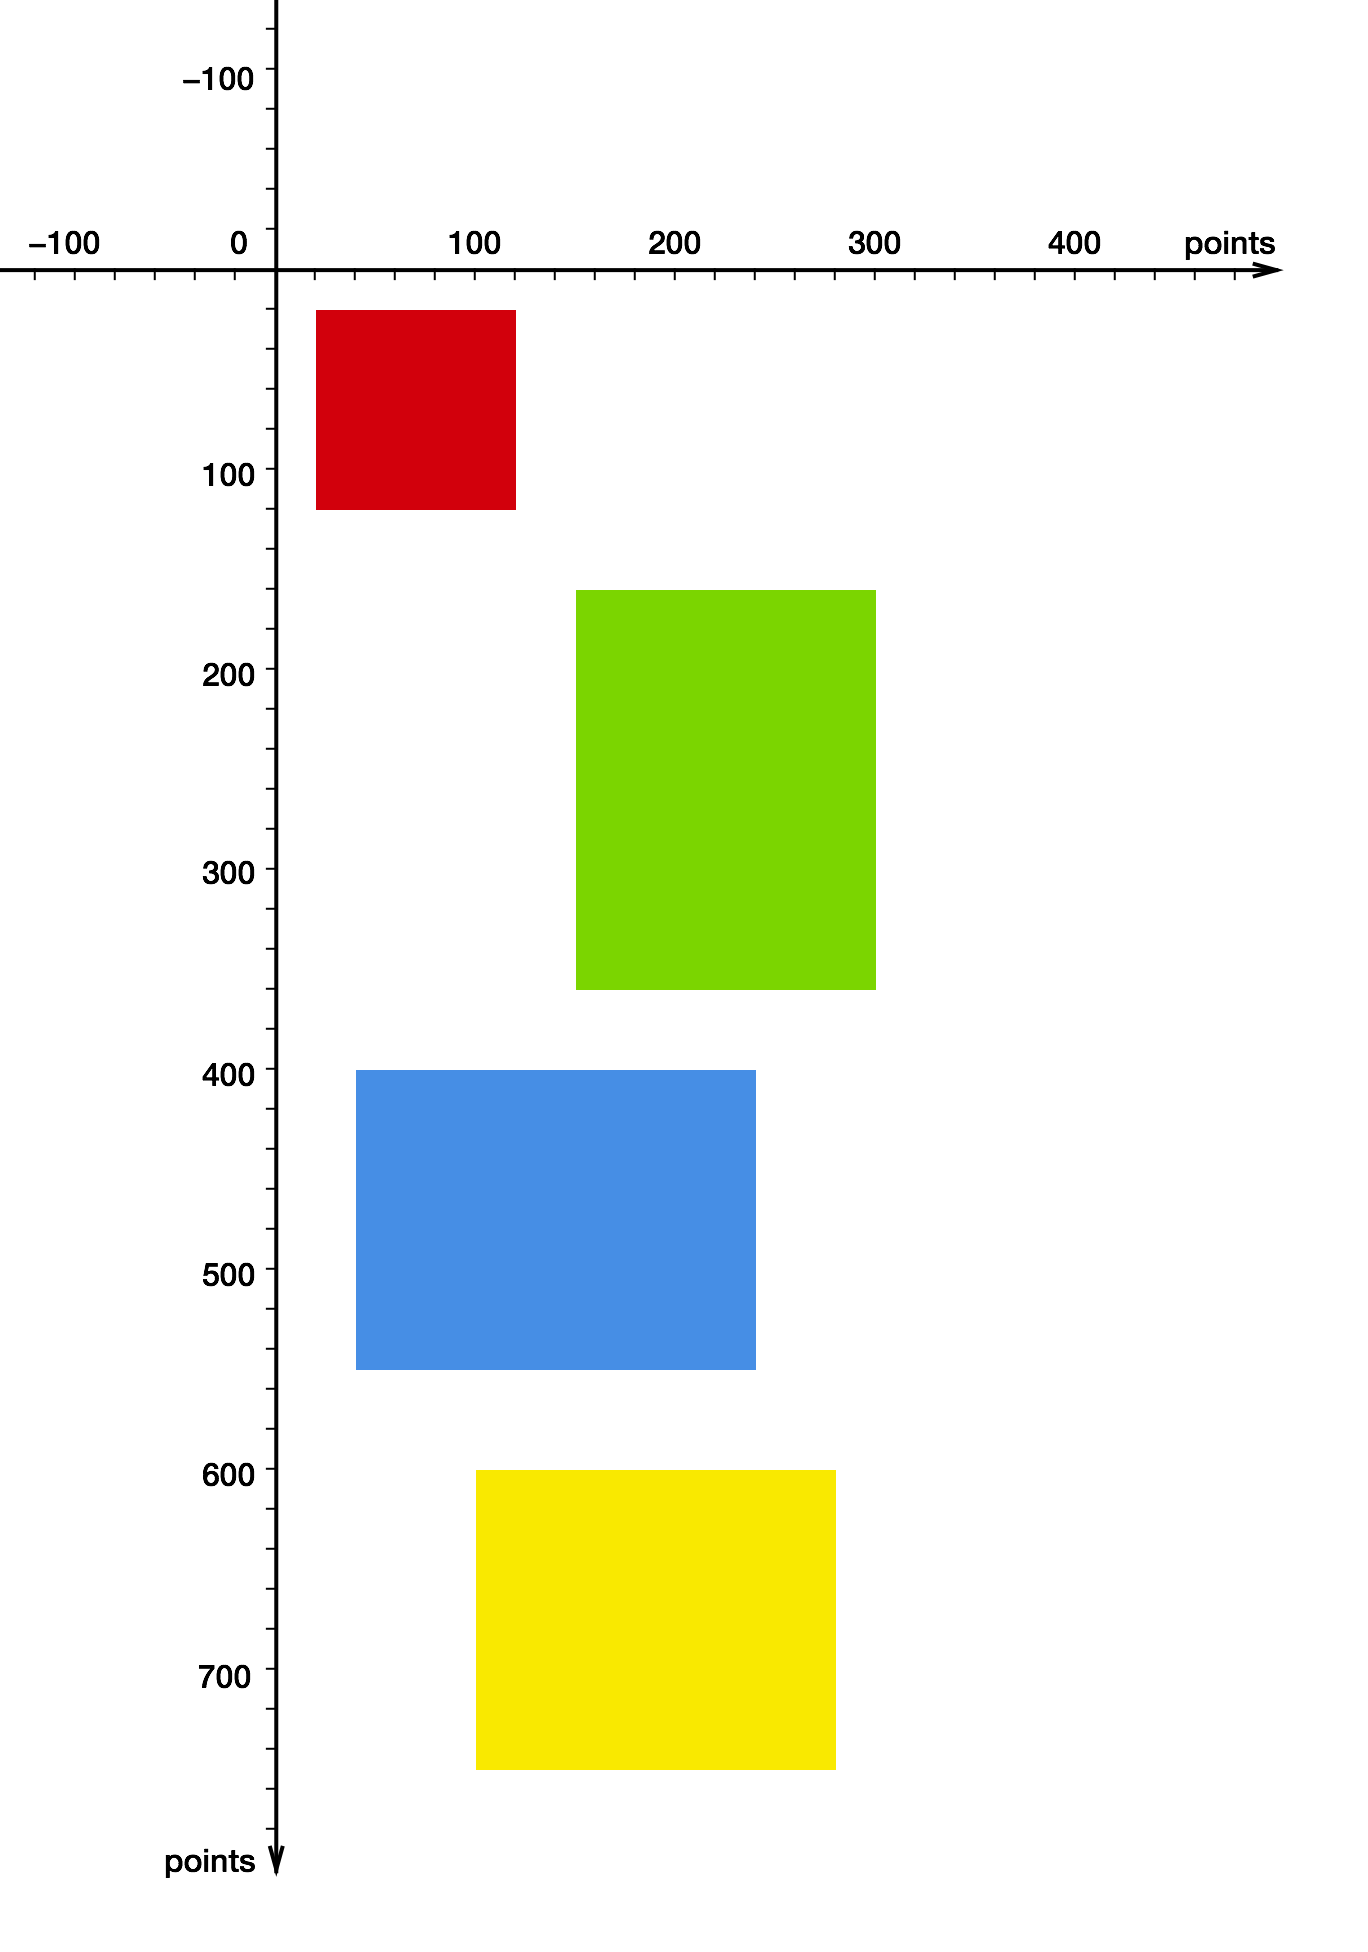 Four rectangles with different colors and sizes placed at different coordinates in the coordinate system